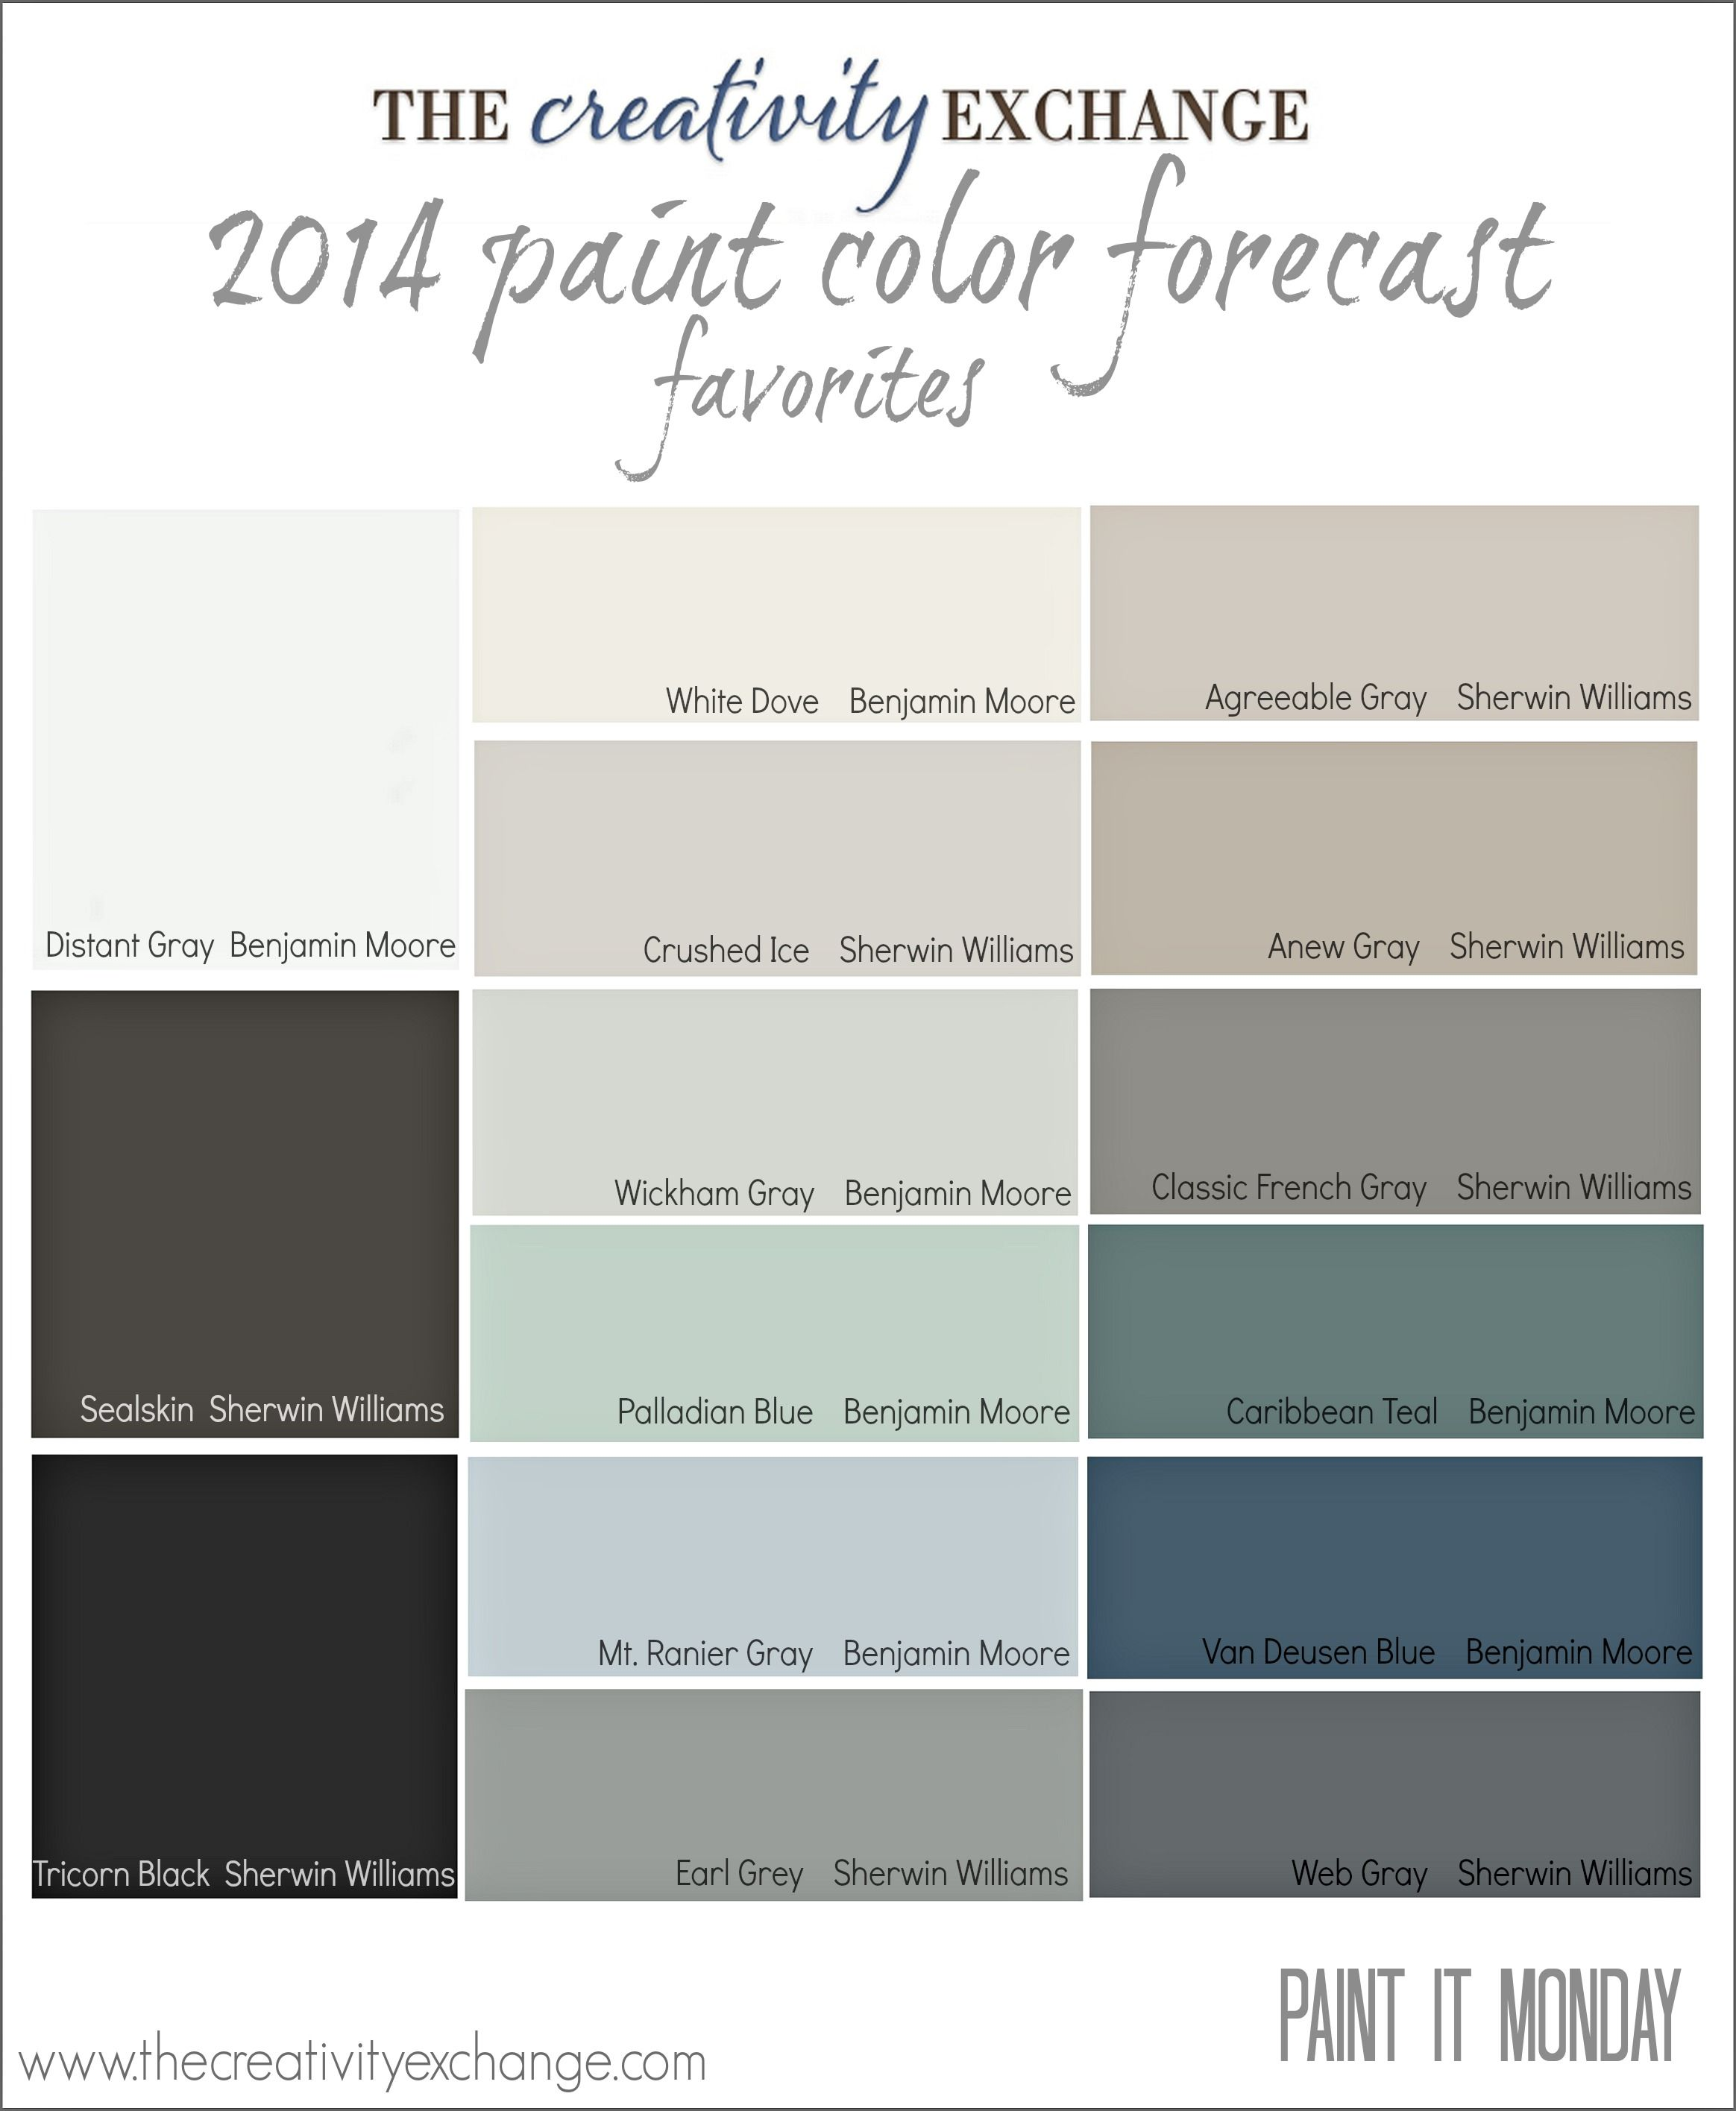 Favorites From The 2014 Paint Color Forecast {Paint It Monday}